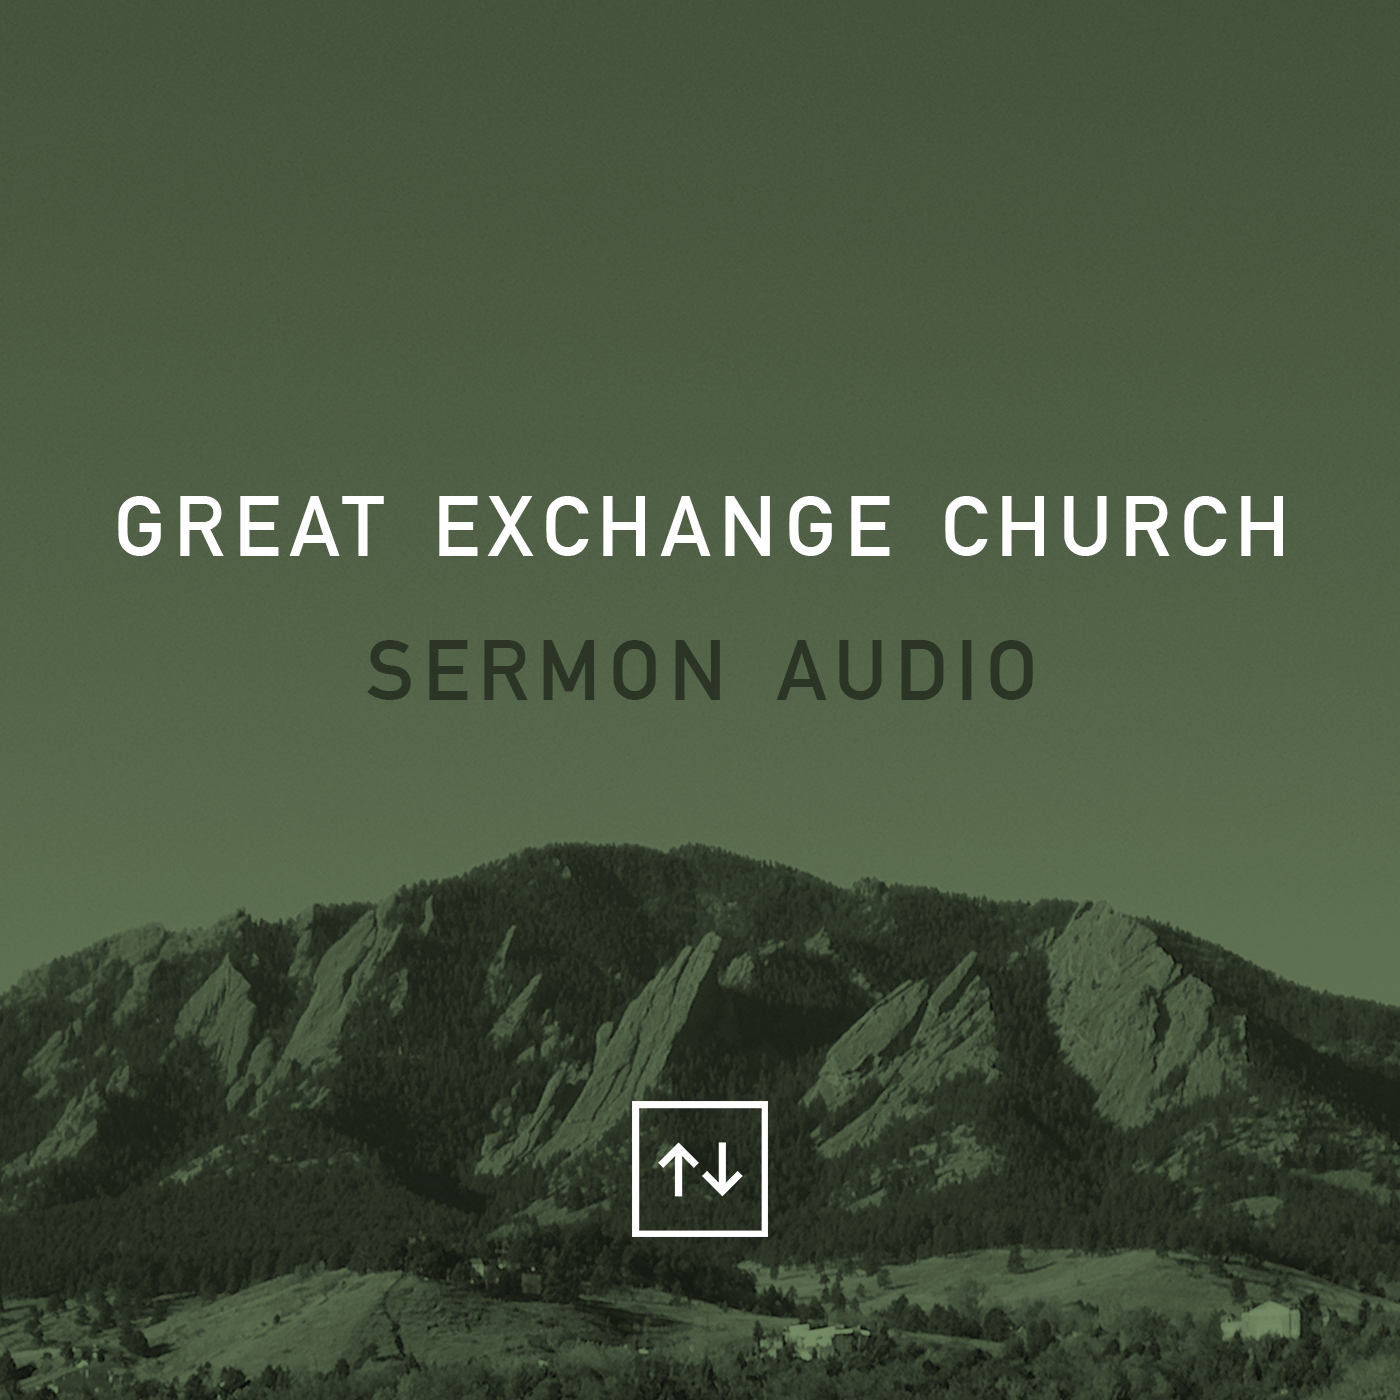 Listen - Great Exchange Church in Boulder, CO